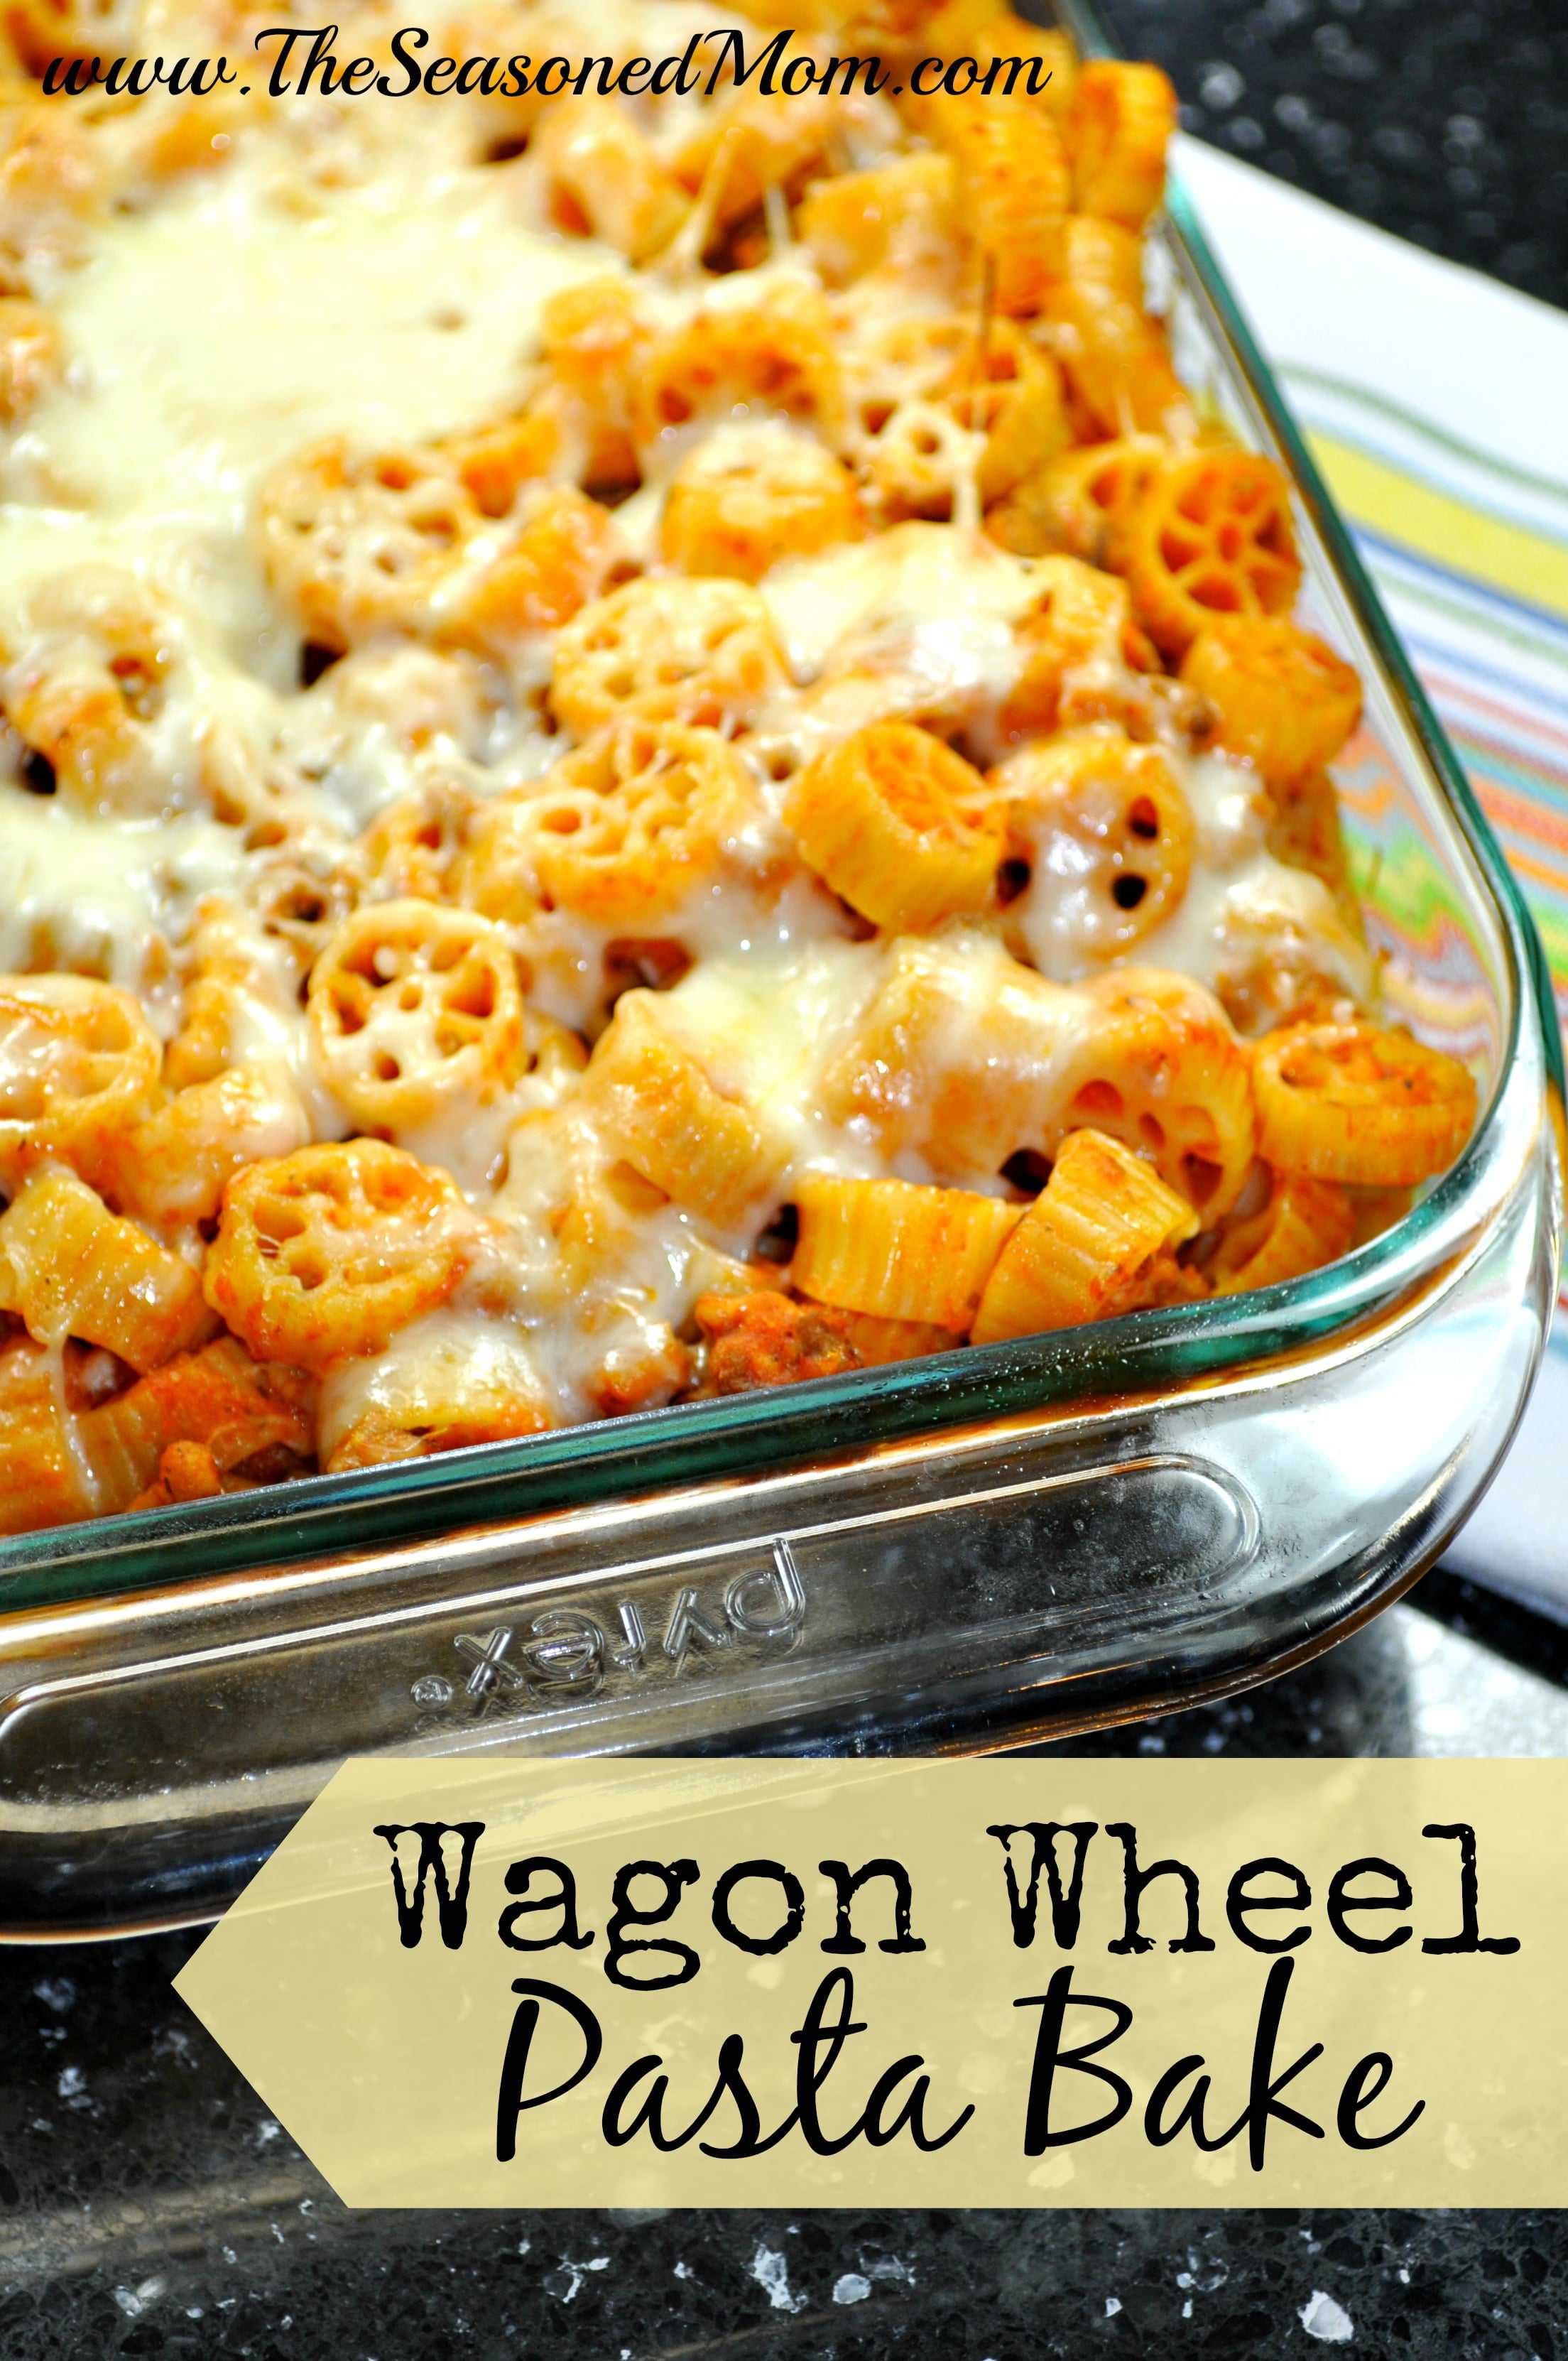 Wagon wheels pasta recipe